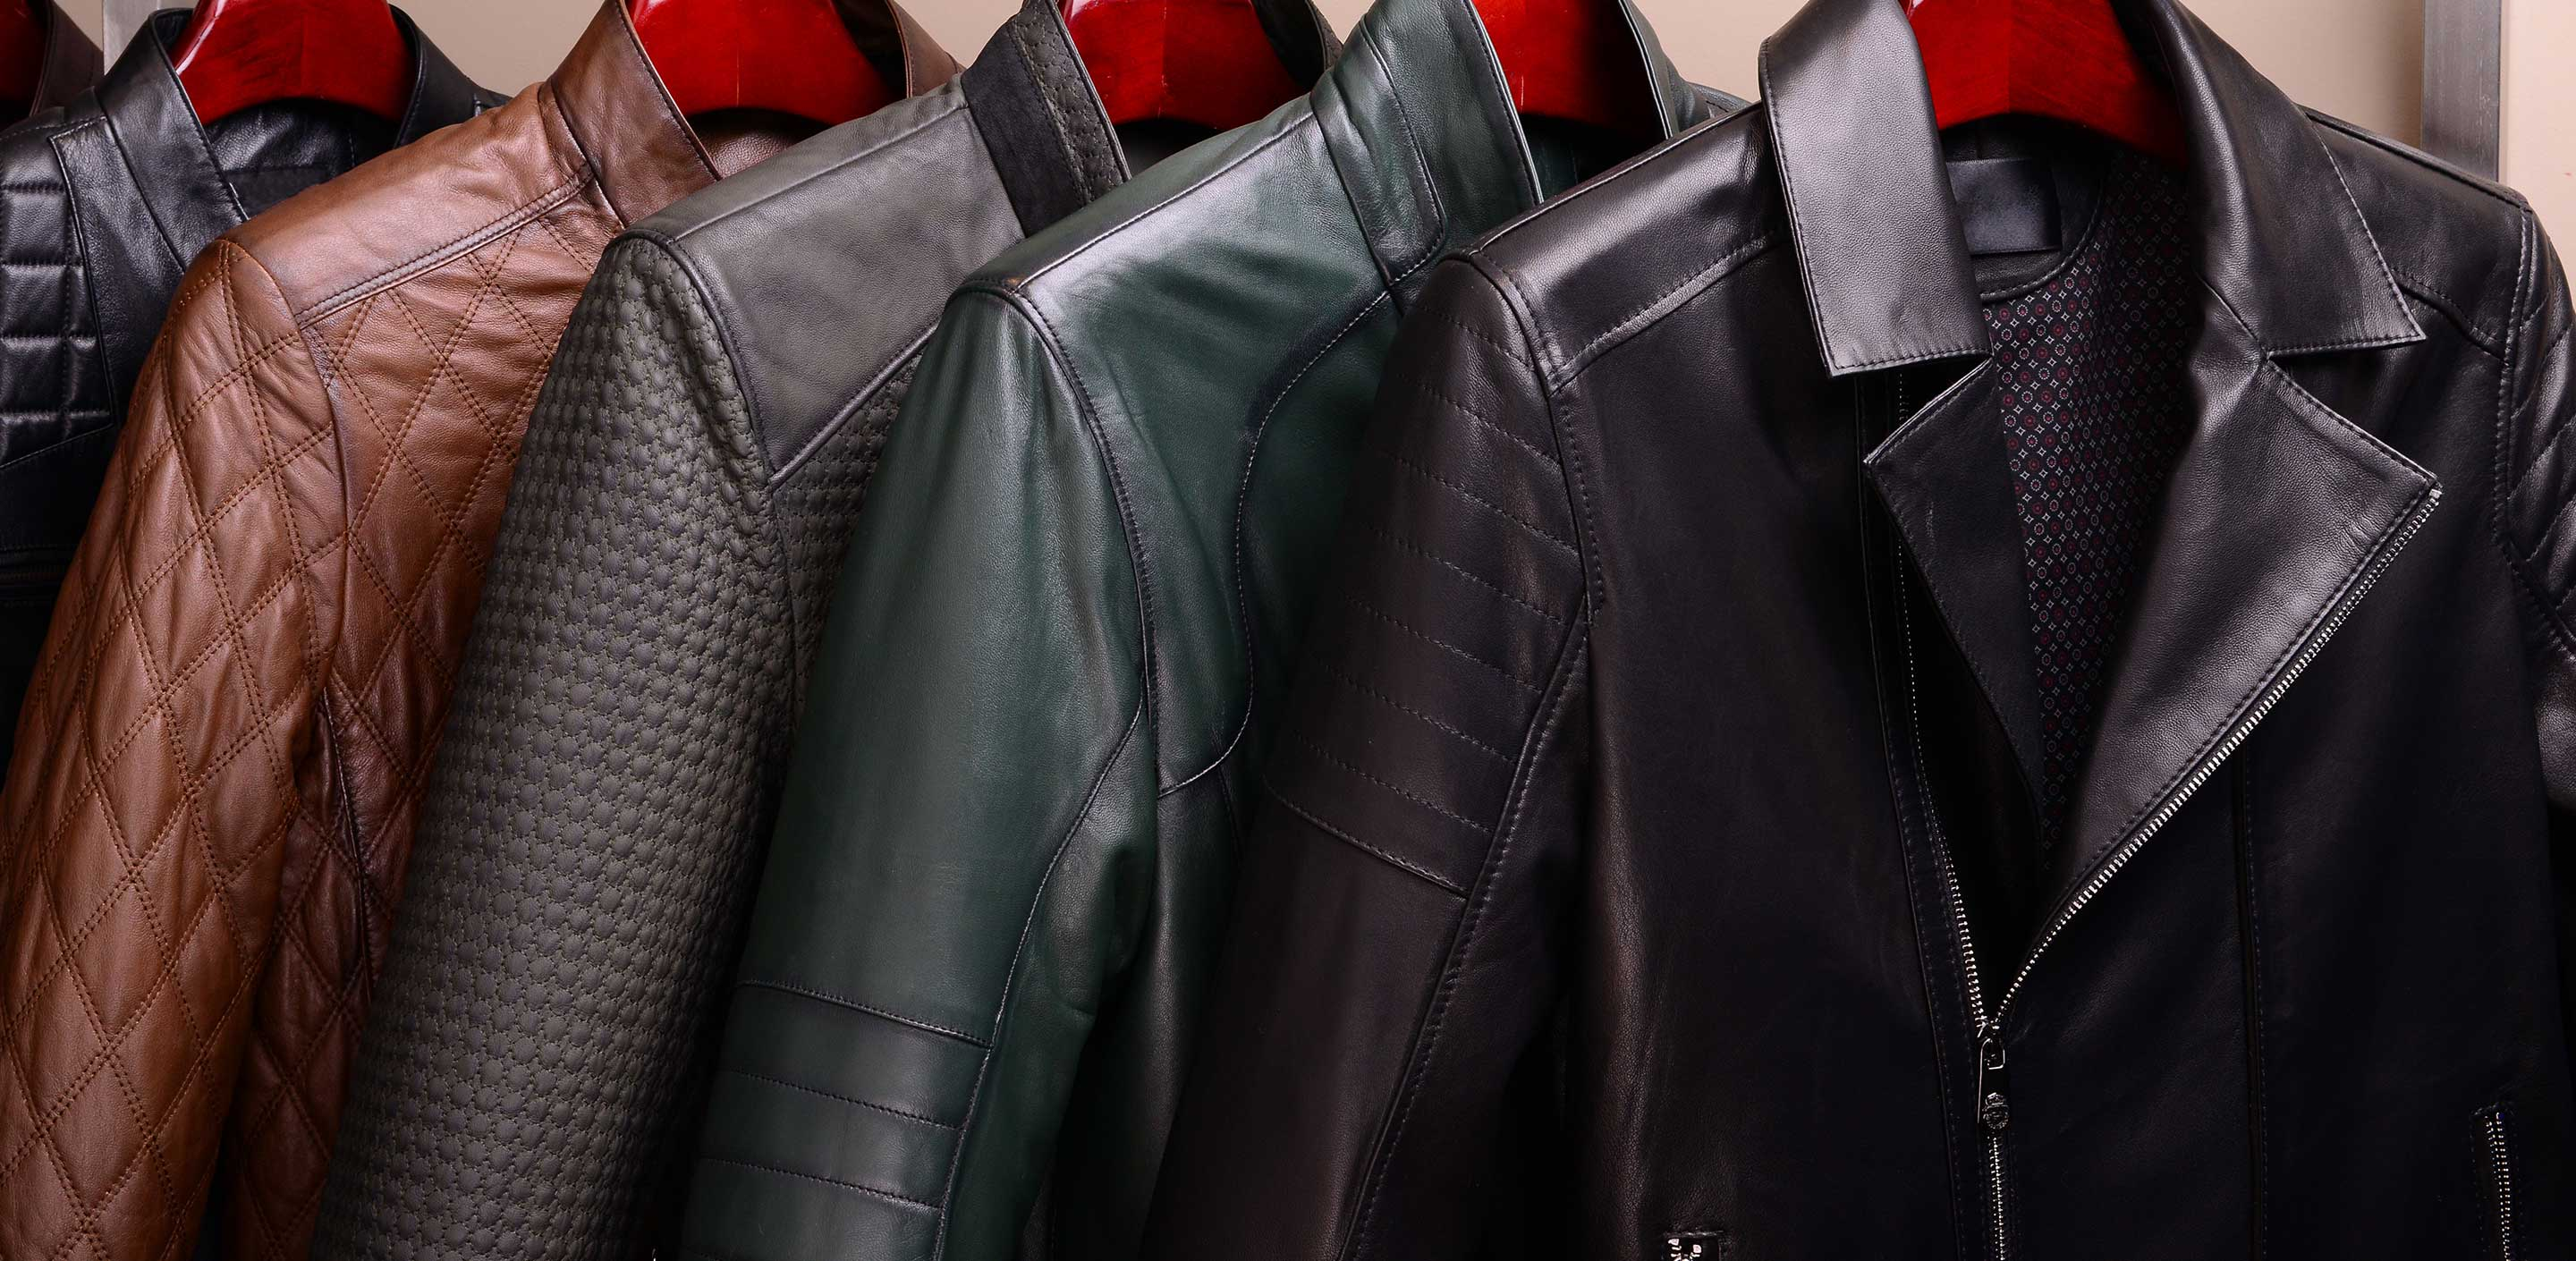 Why are Leather Jackets so Expensive?